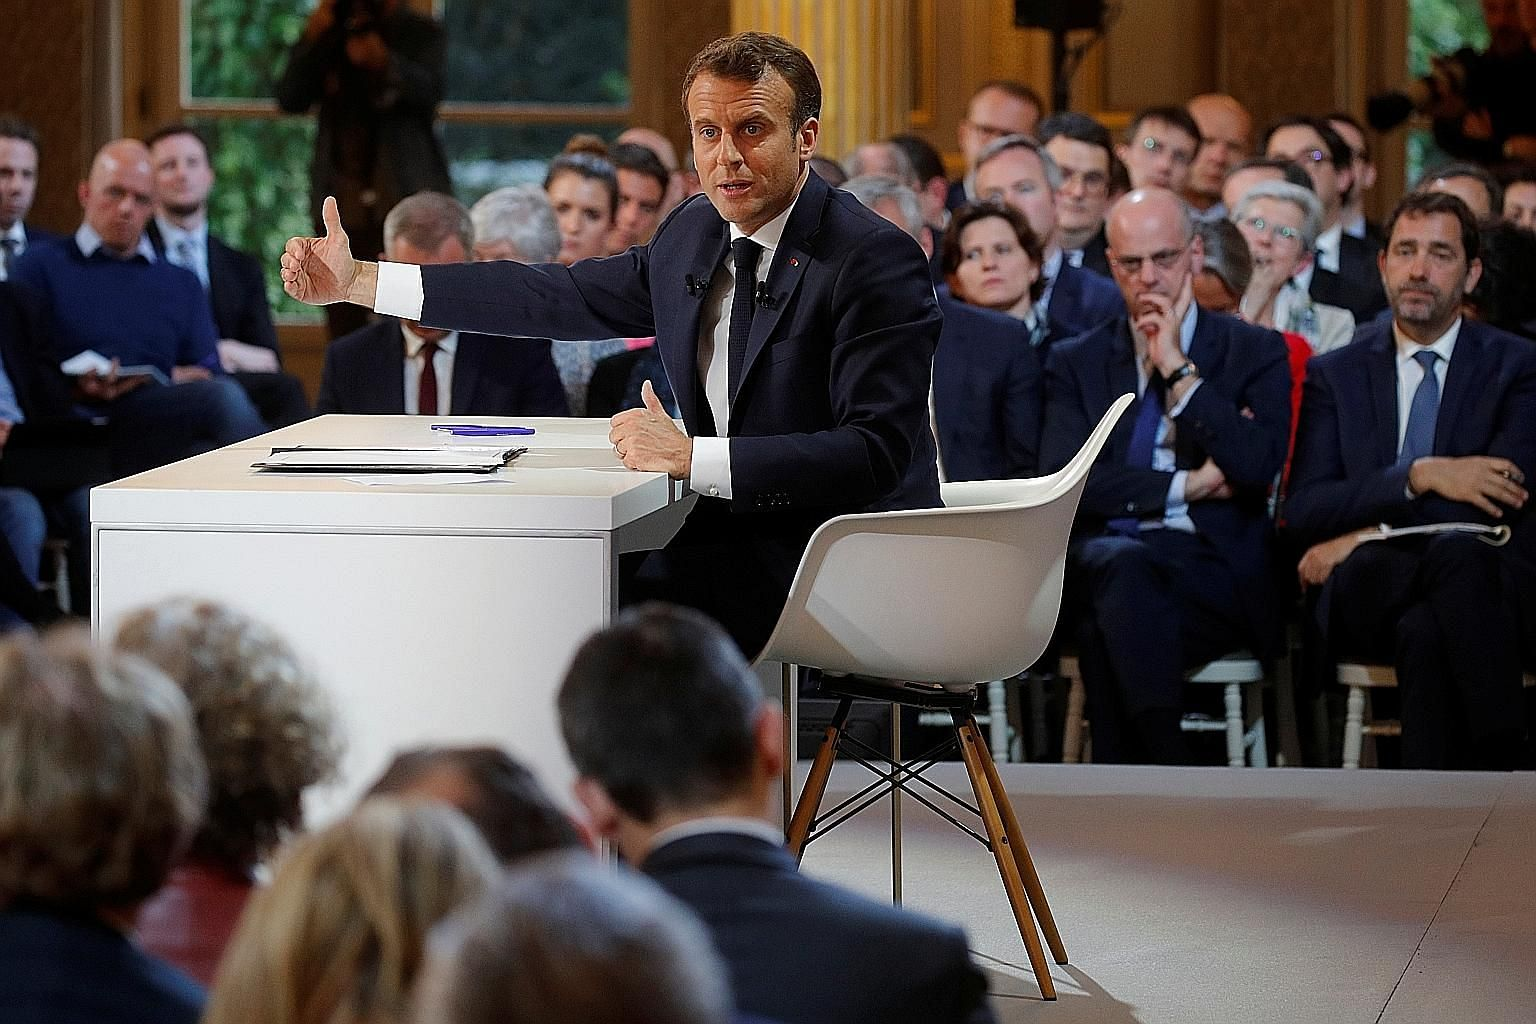 """French President Emmanuel Macron at a news conference to unveil his policy response to the """"yellow vest"""" protests. He has offered €5 billion (S$7.6 billion) of cuts to income tax and has promised education reforms."""